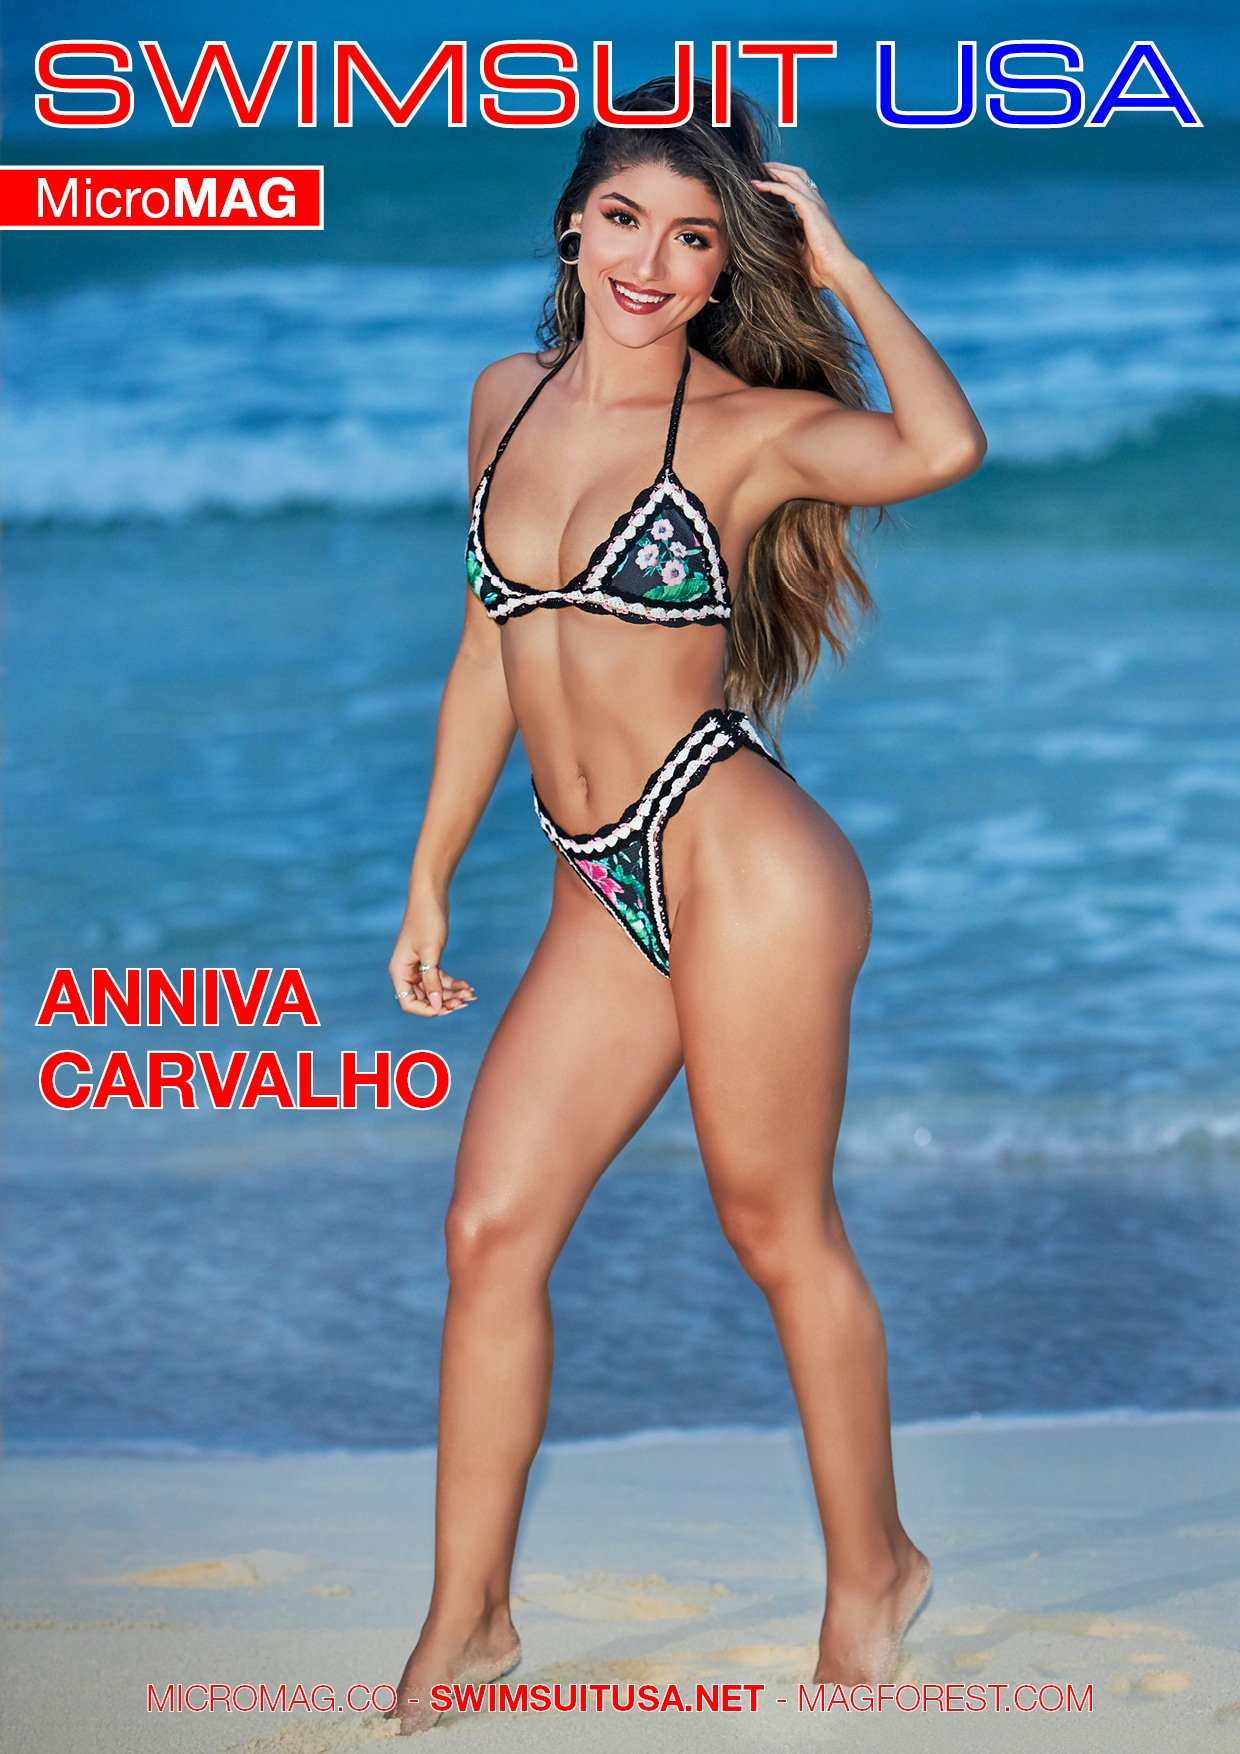 Swimsuit USA MicroMAG - Anniva Carvalho - Issue 2 1